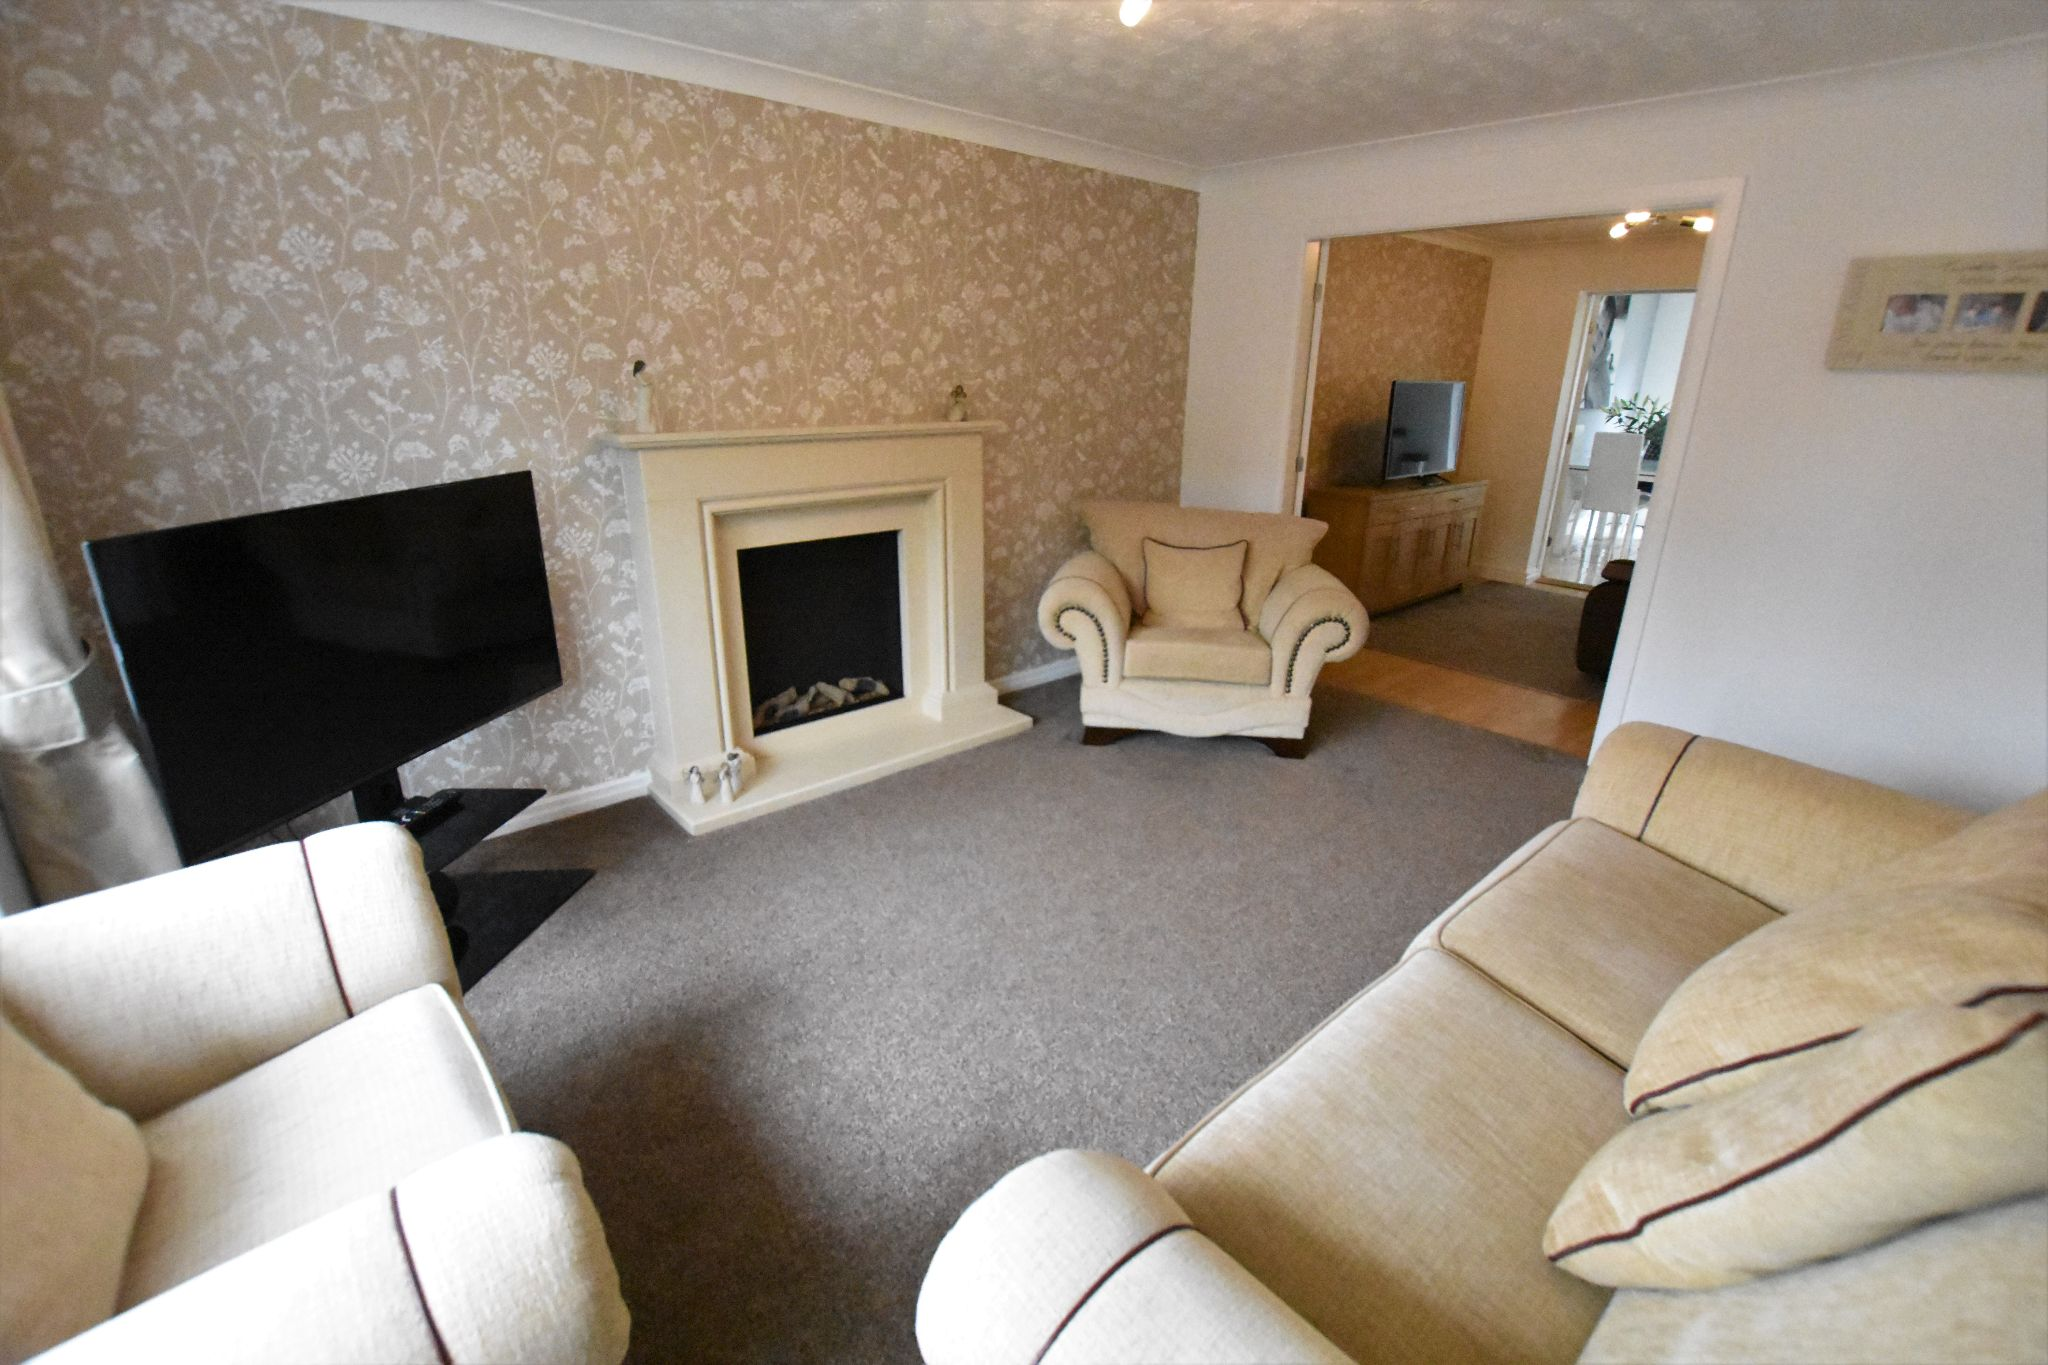 3 bedroom detached house Sold STC in Preston - Lounge